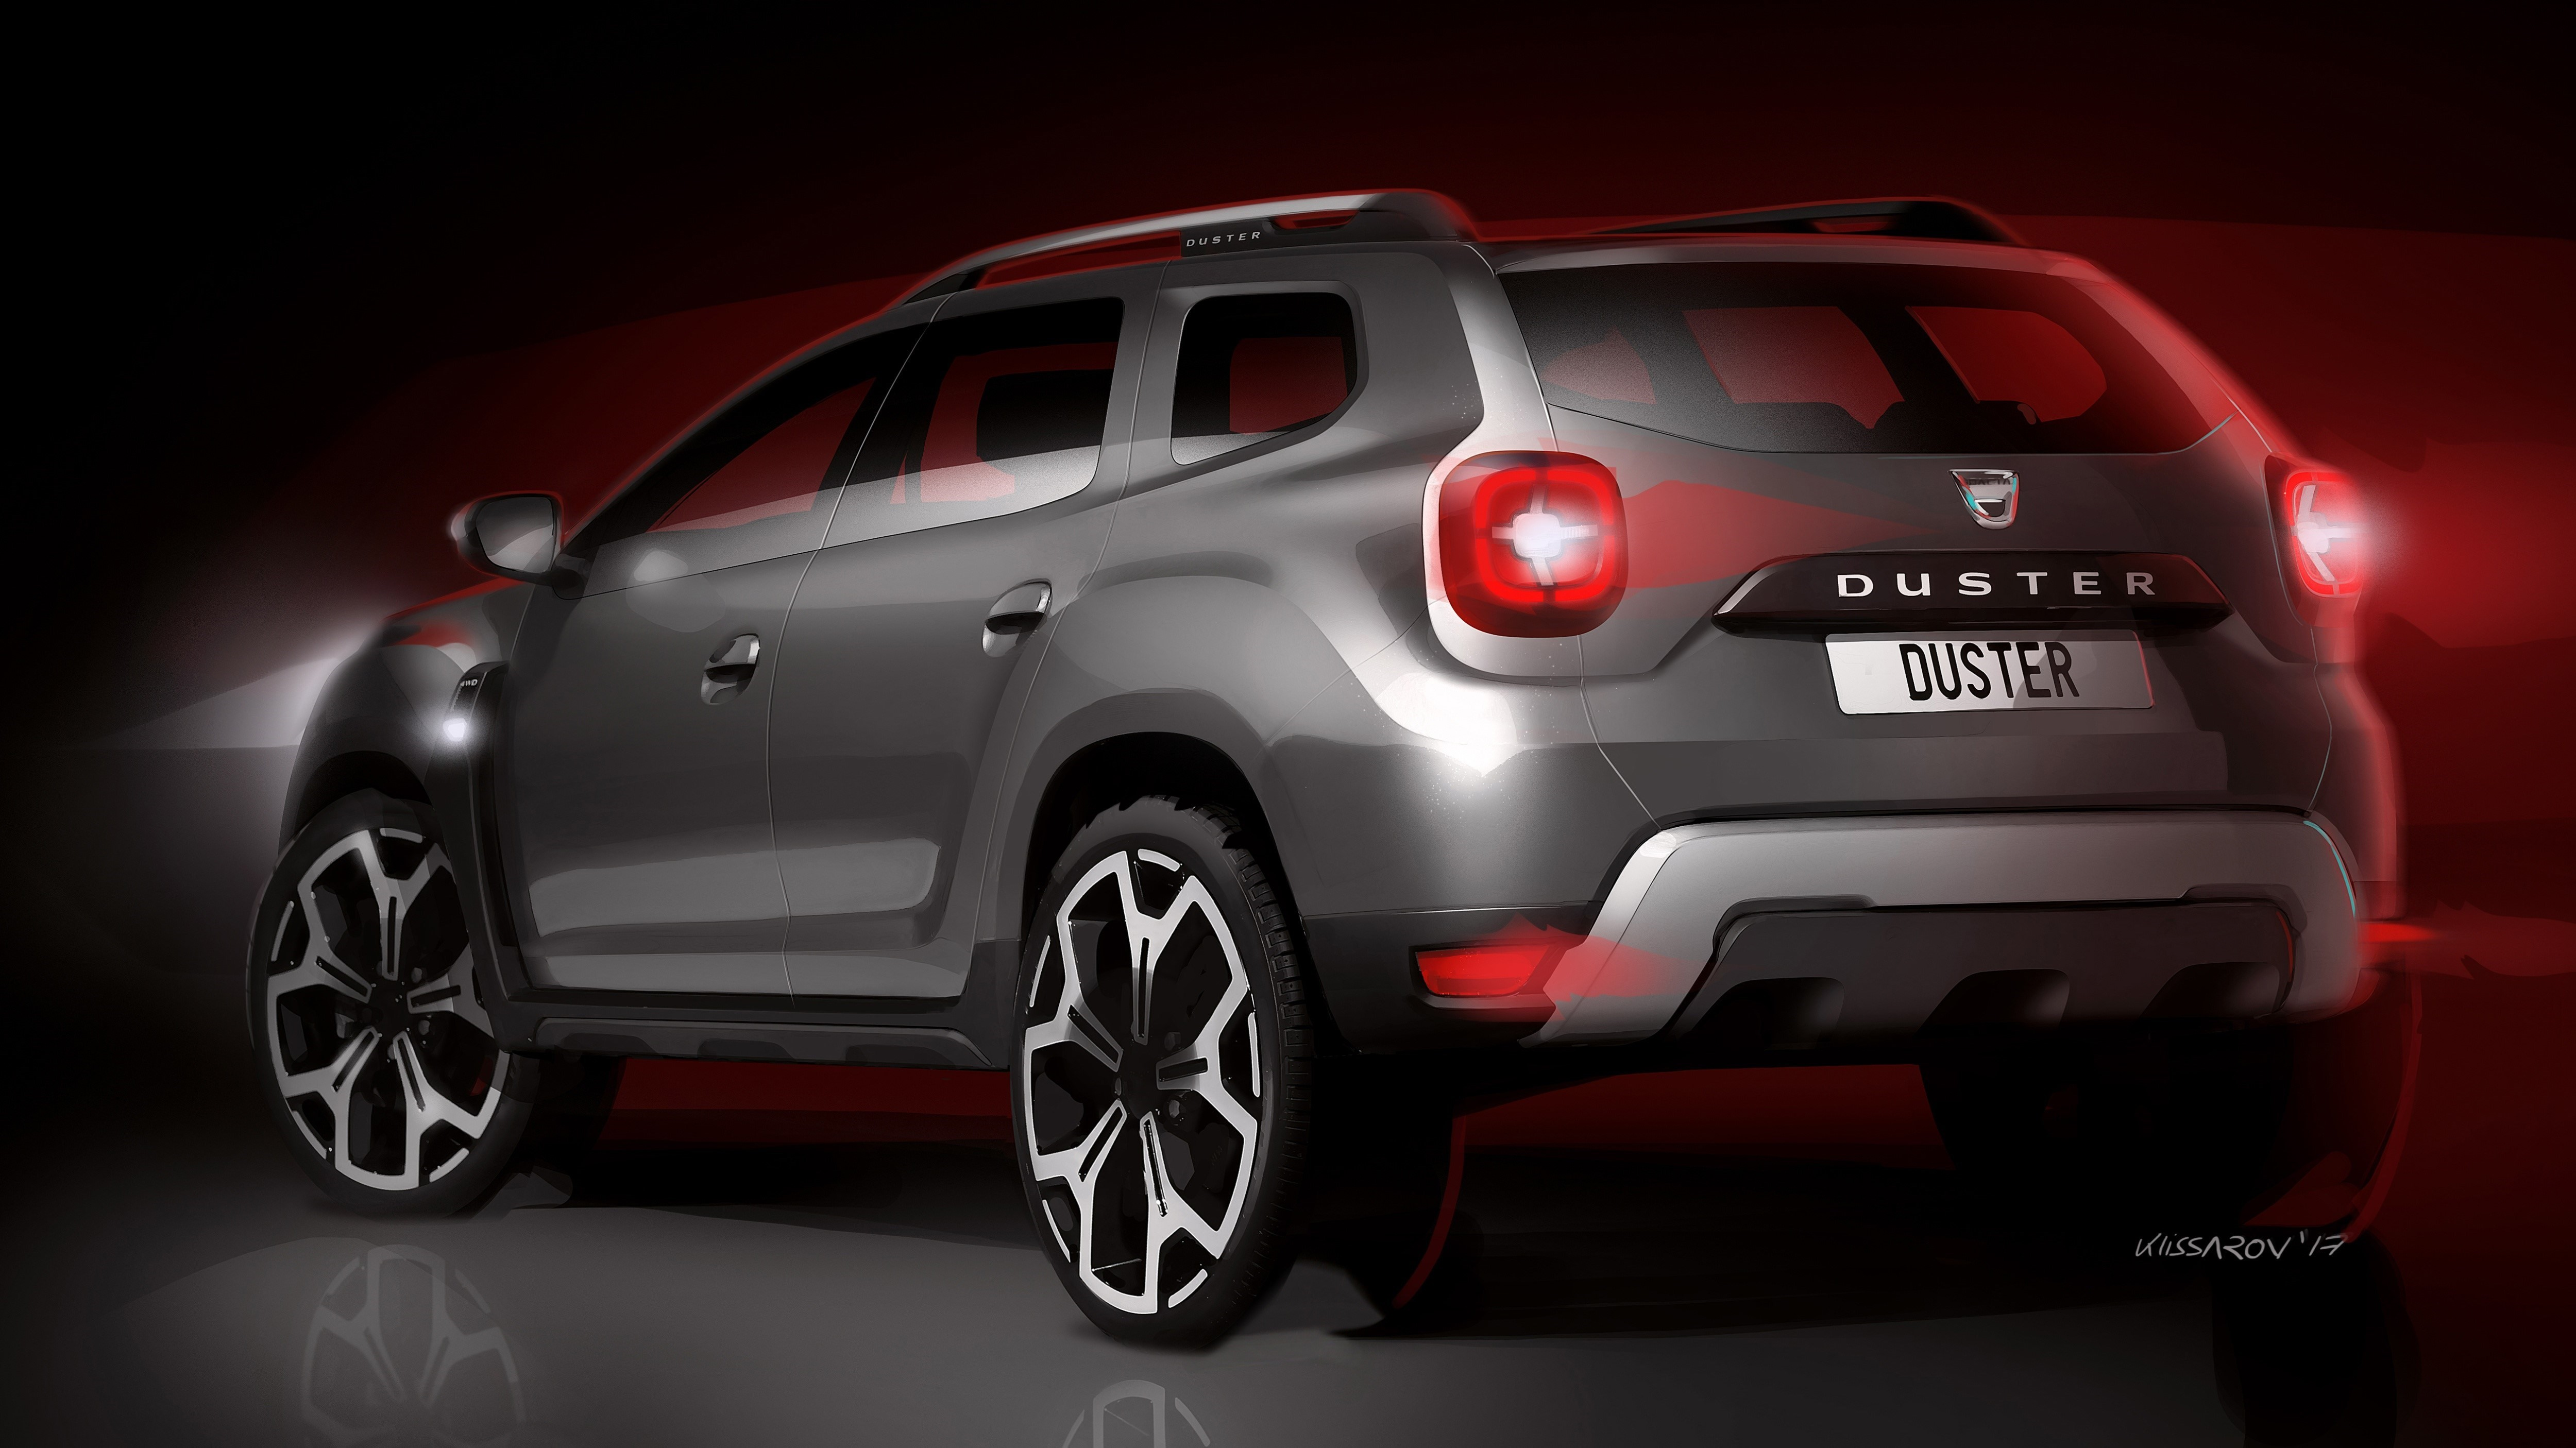 2018 dacia duster revealed with evolutionary design and raised ground clearance autoevolution. Black Bedroom Furniture Sets. Home Design Ideas